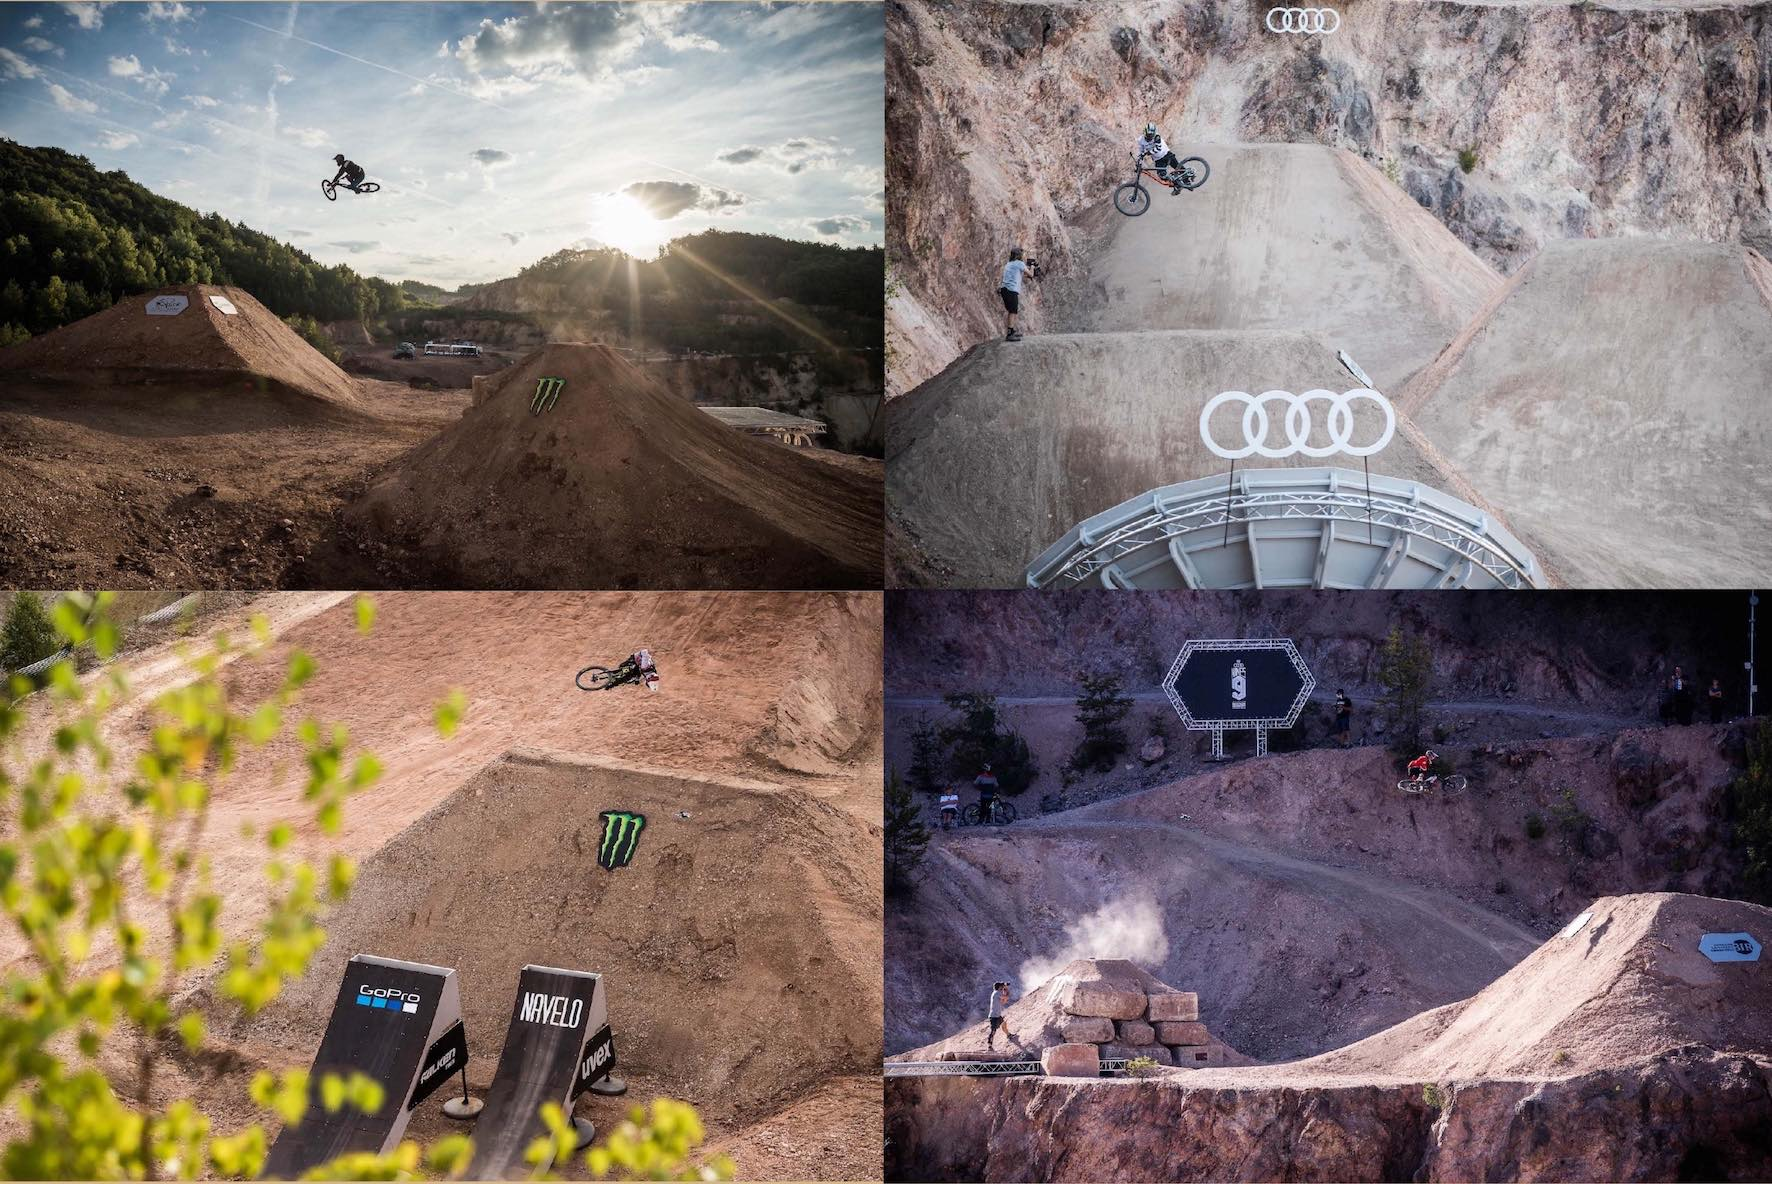 Massive Slopestyle Mountain Bike and Freeride Mountain Bike trick performed at the Audi Nines 2018